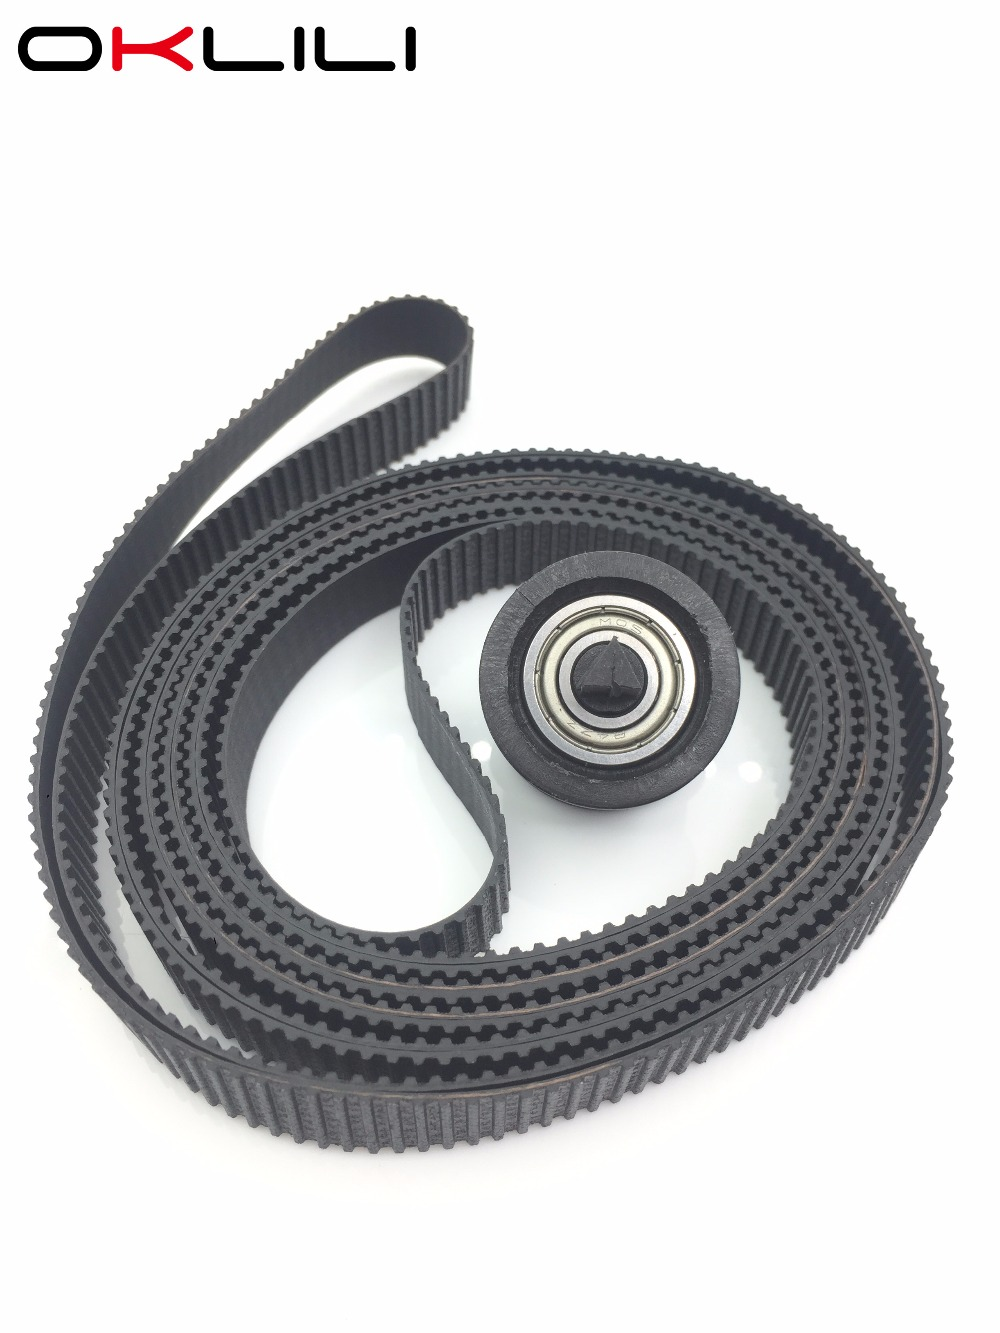 C7769-60182 Carriage Belt With Pulley 24'' 24 Inch A1 For HP DesignJet 500 500PS 510 510PS 800 800PS Plus 4500 820 MFP 4020 T620